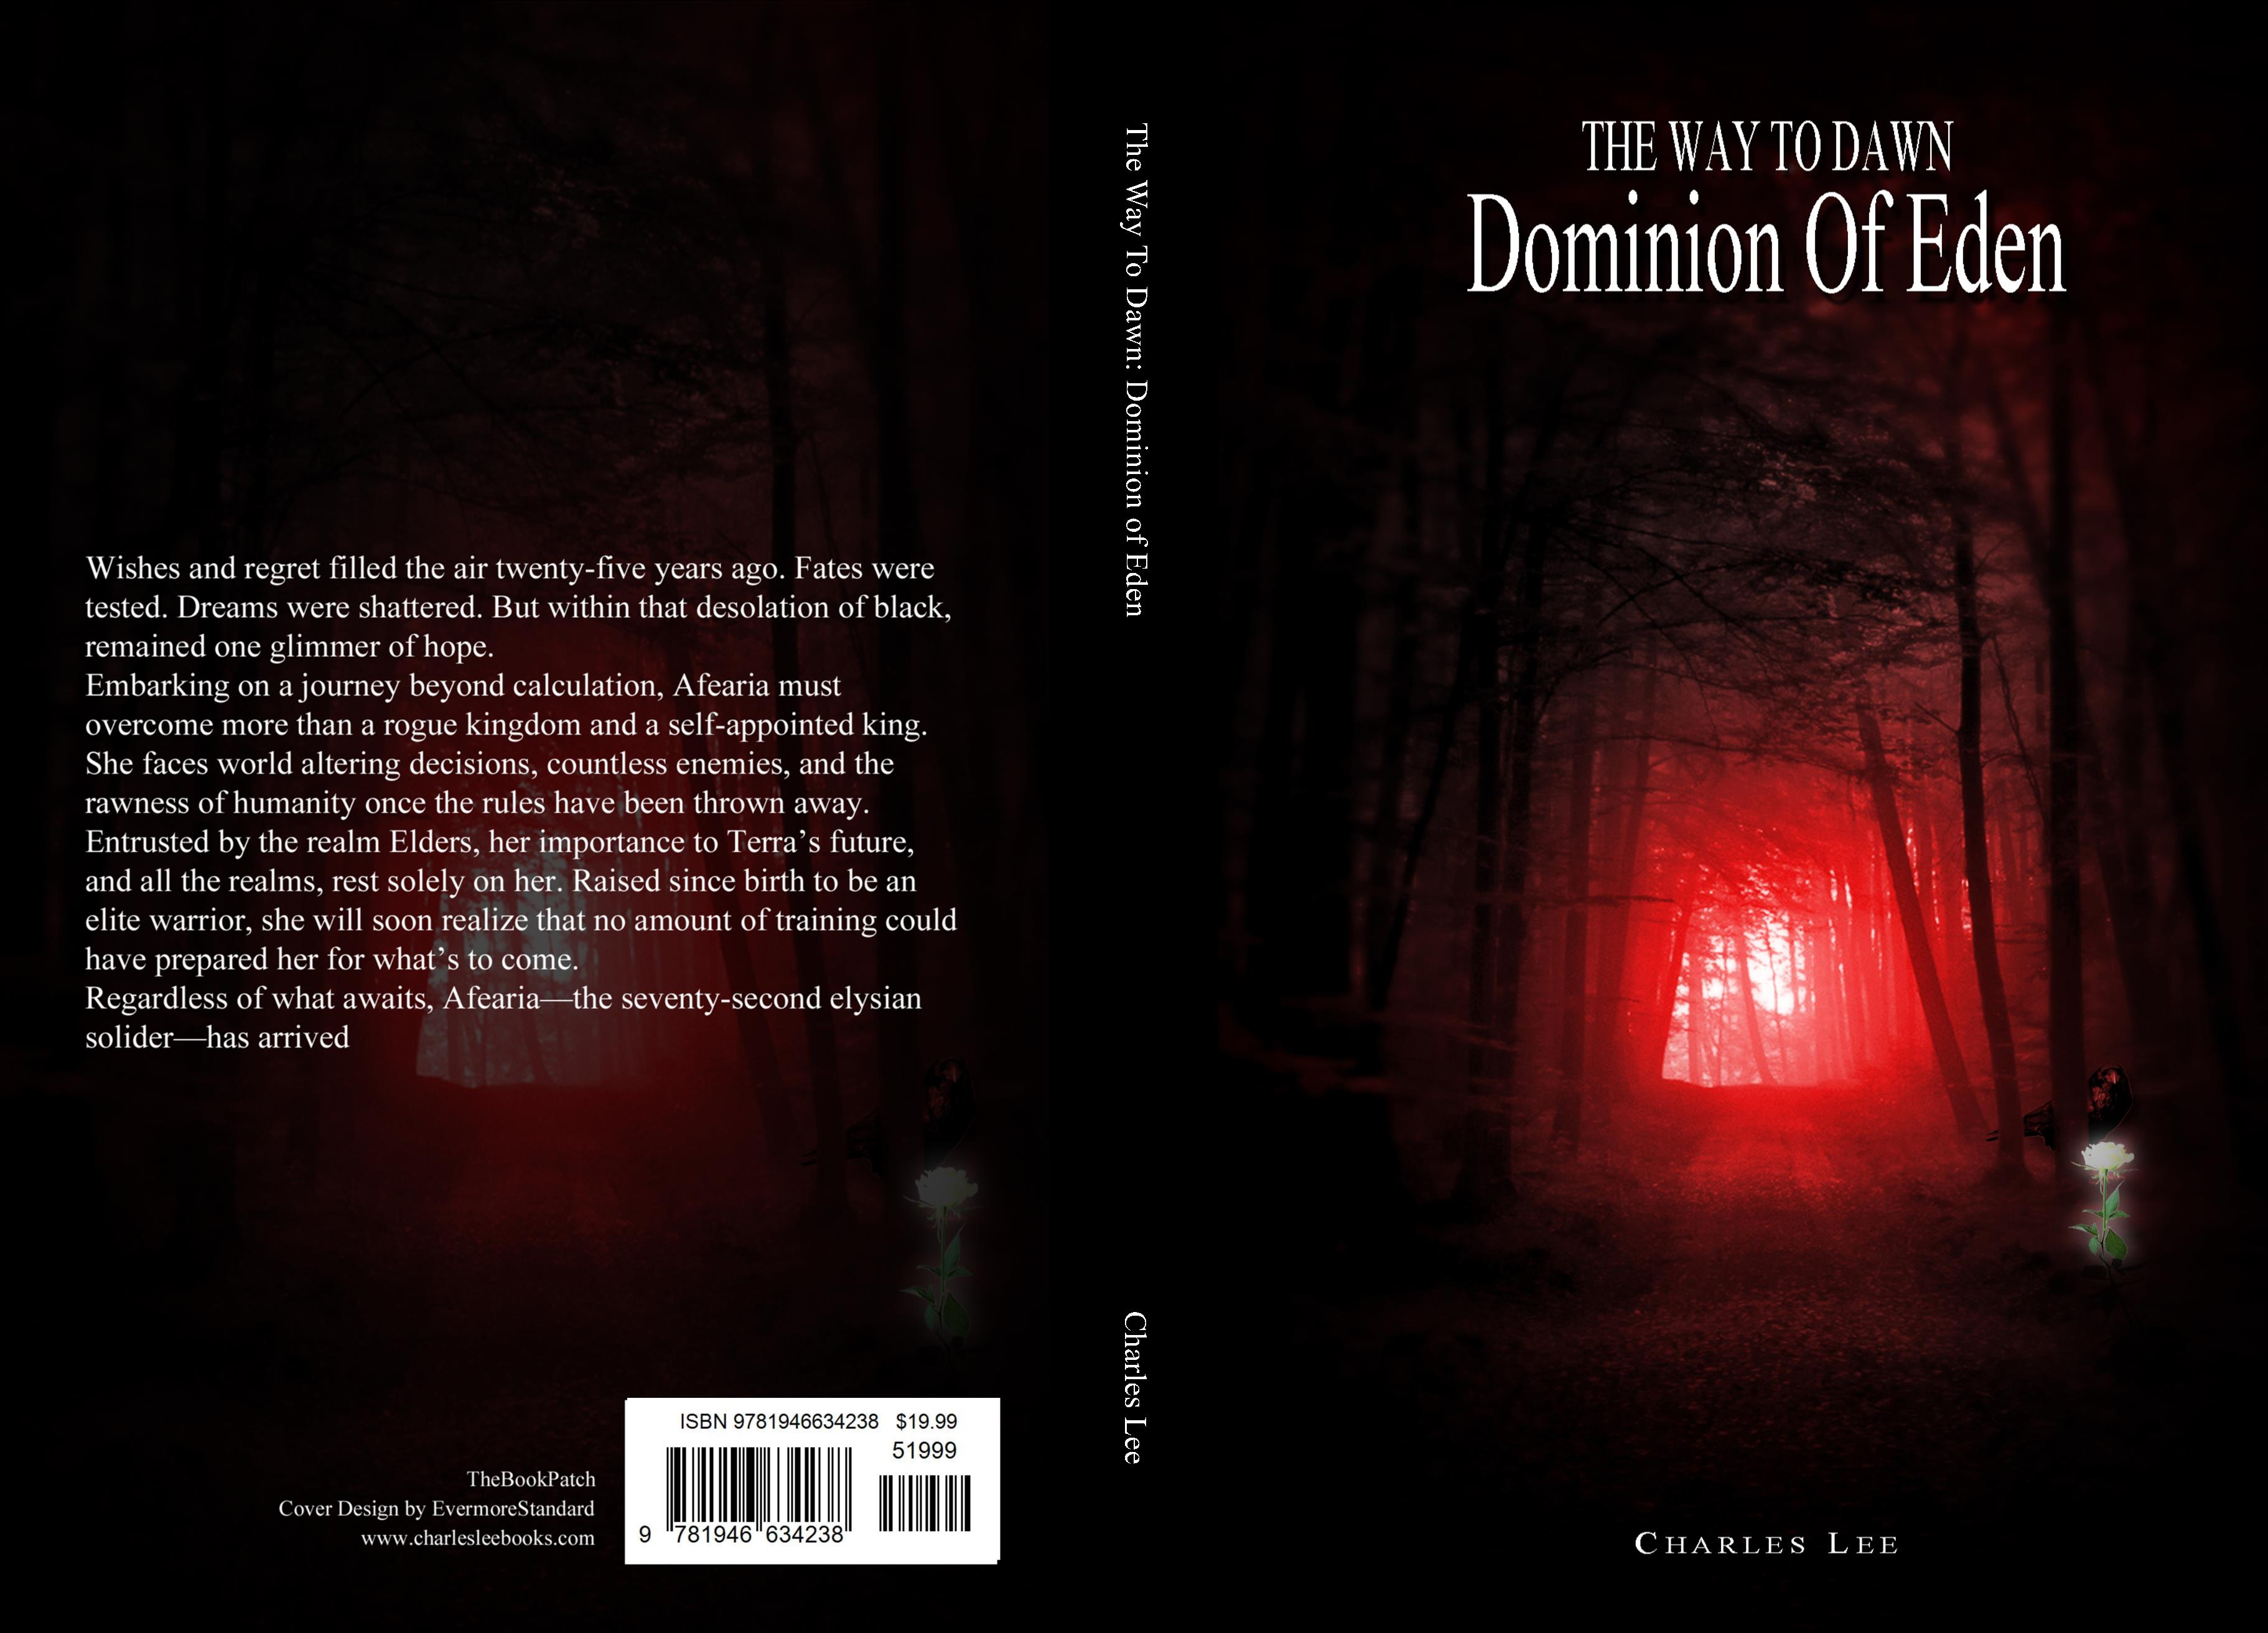 The Way To Dawn: Dominion of Eden cover image